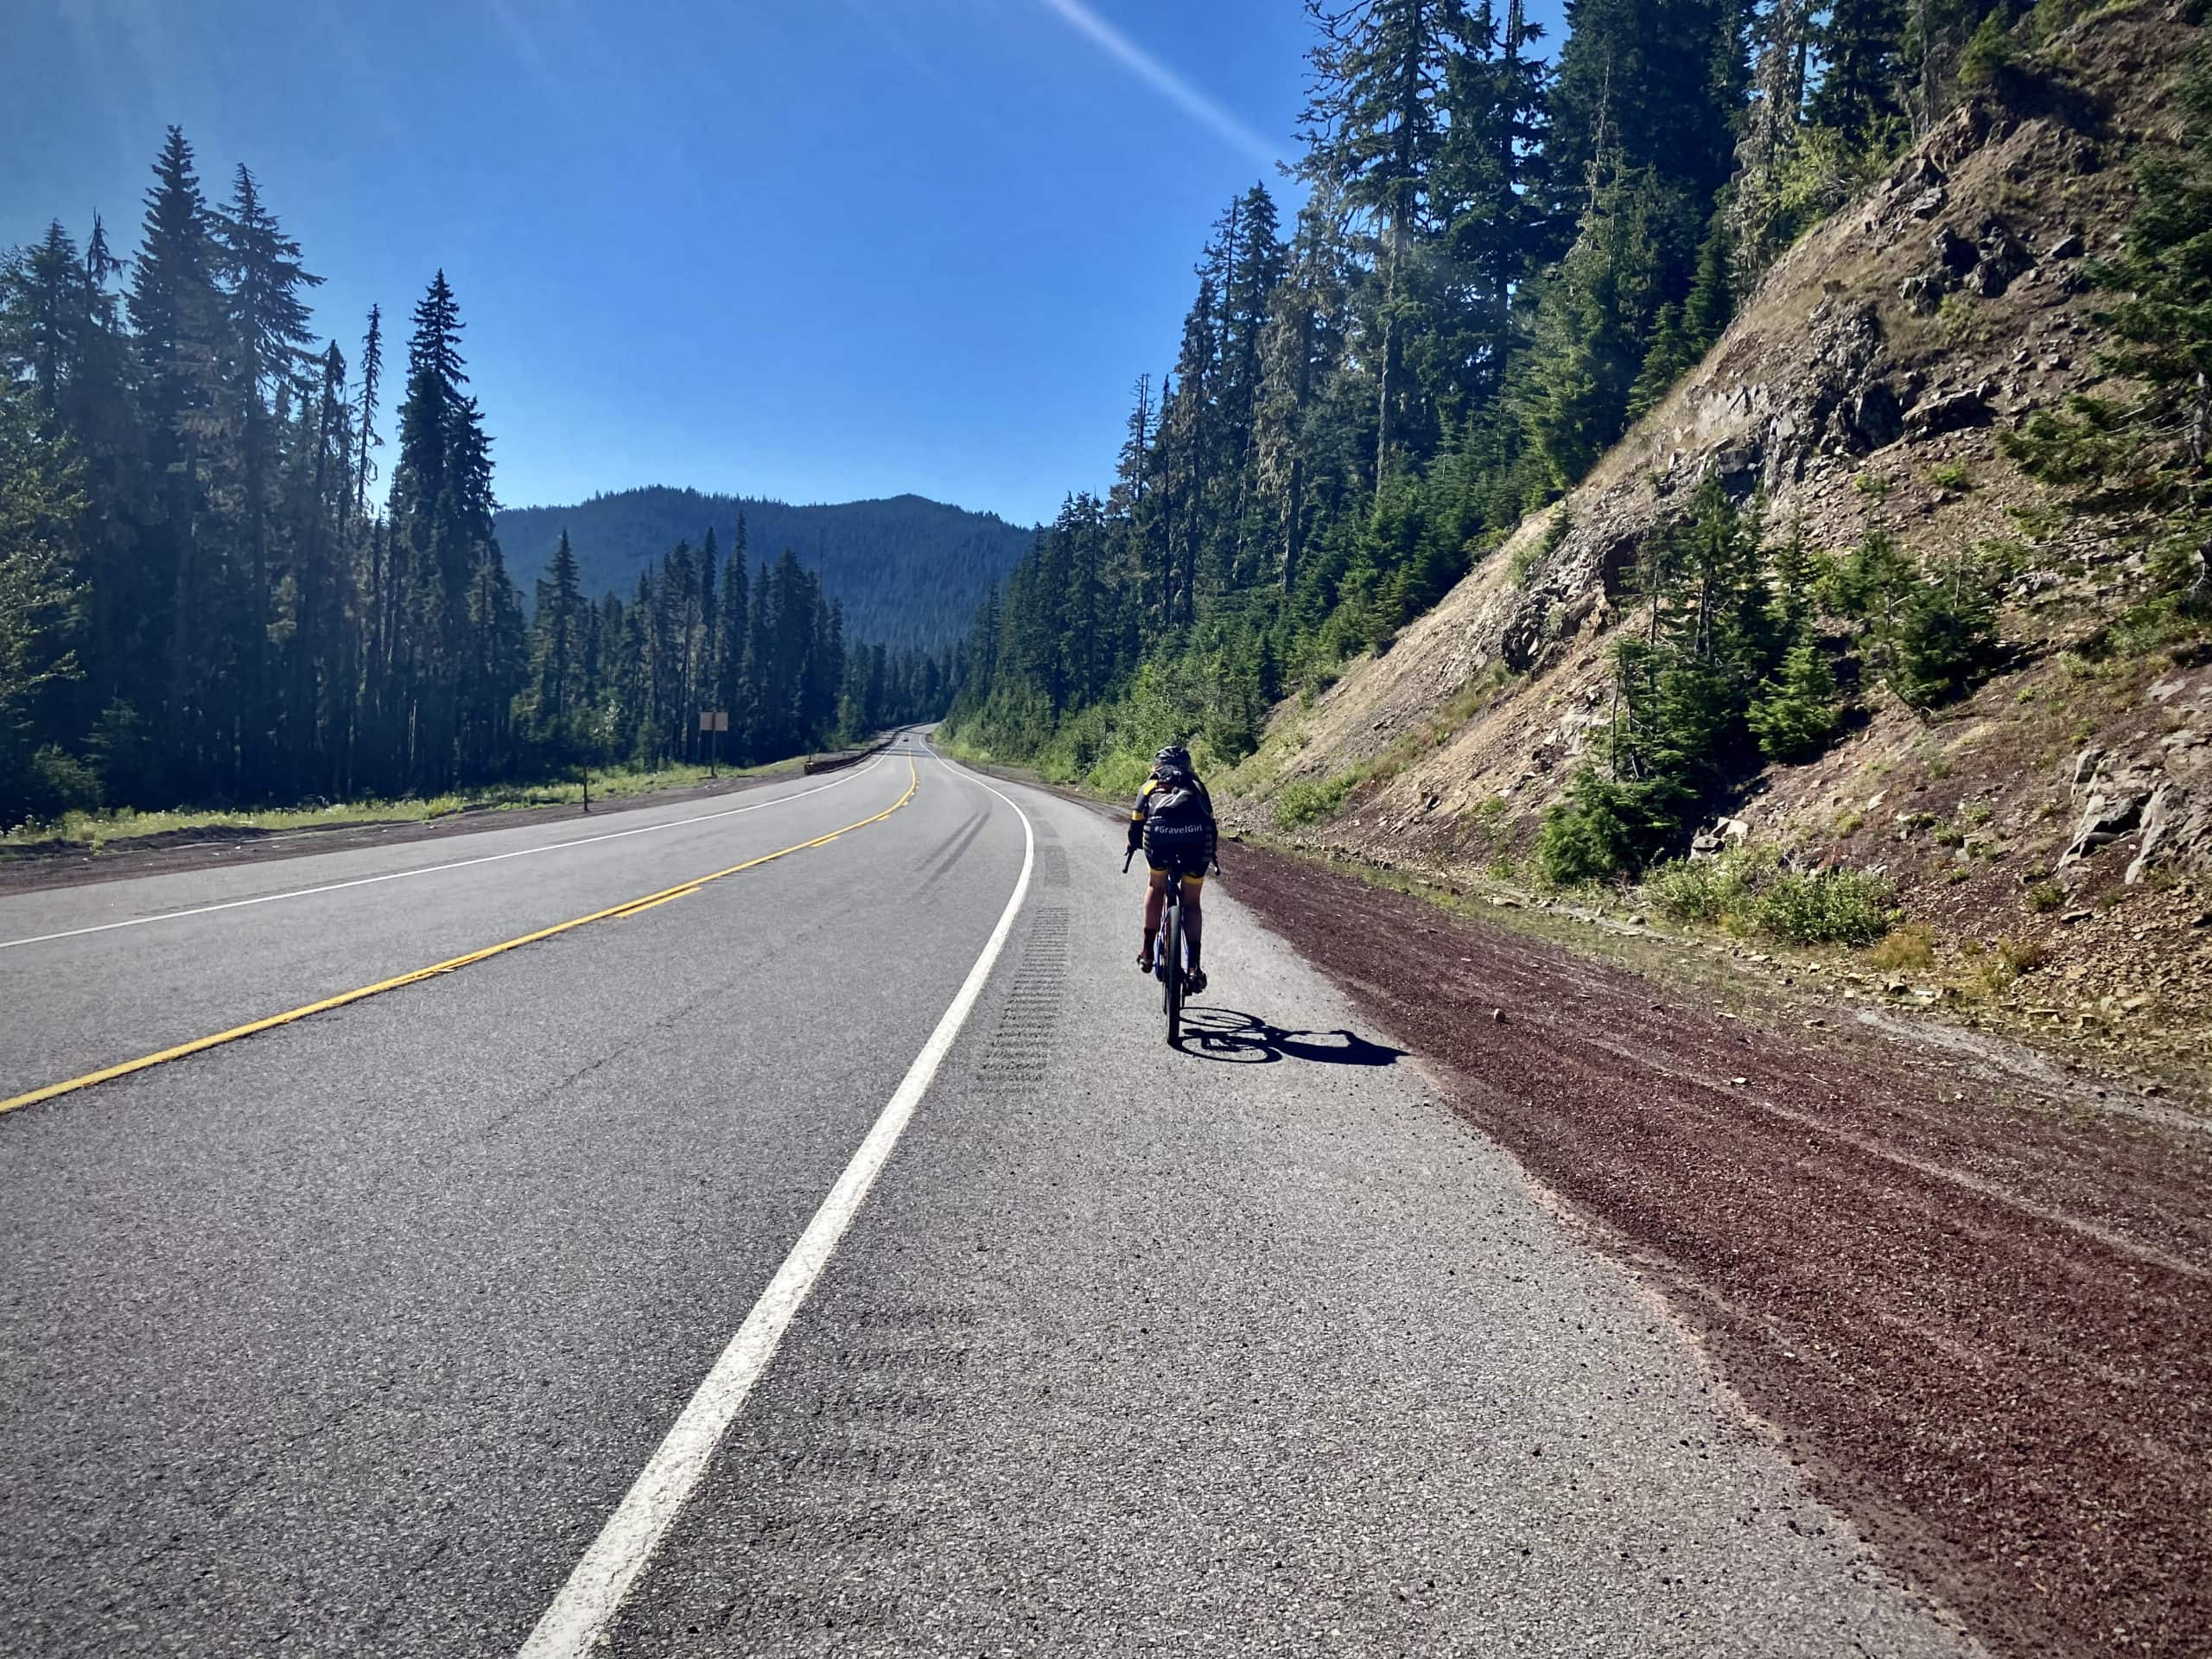 Cyclist on Highway 35, riding in the shoulder near Mt Hood.